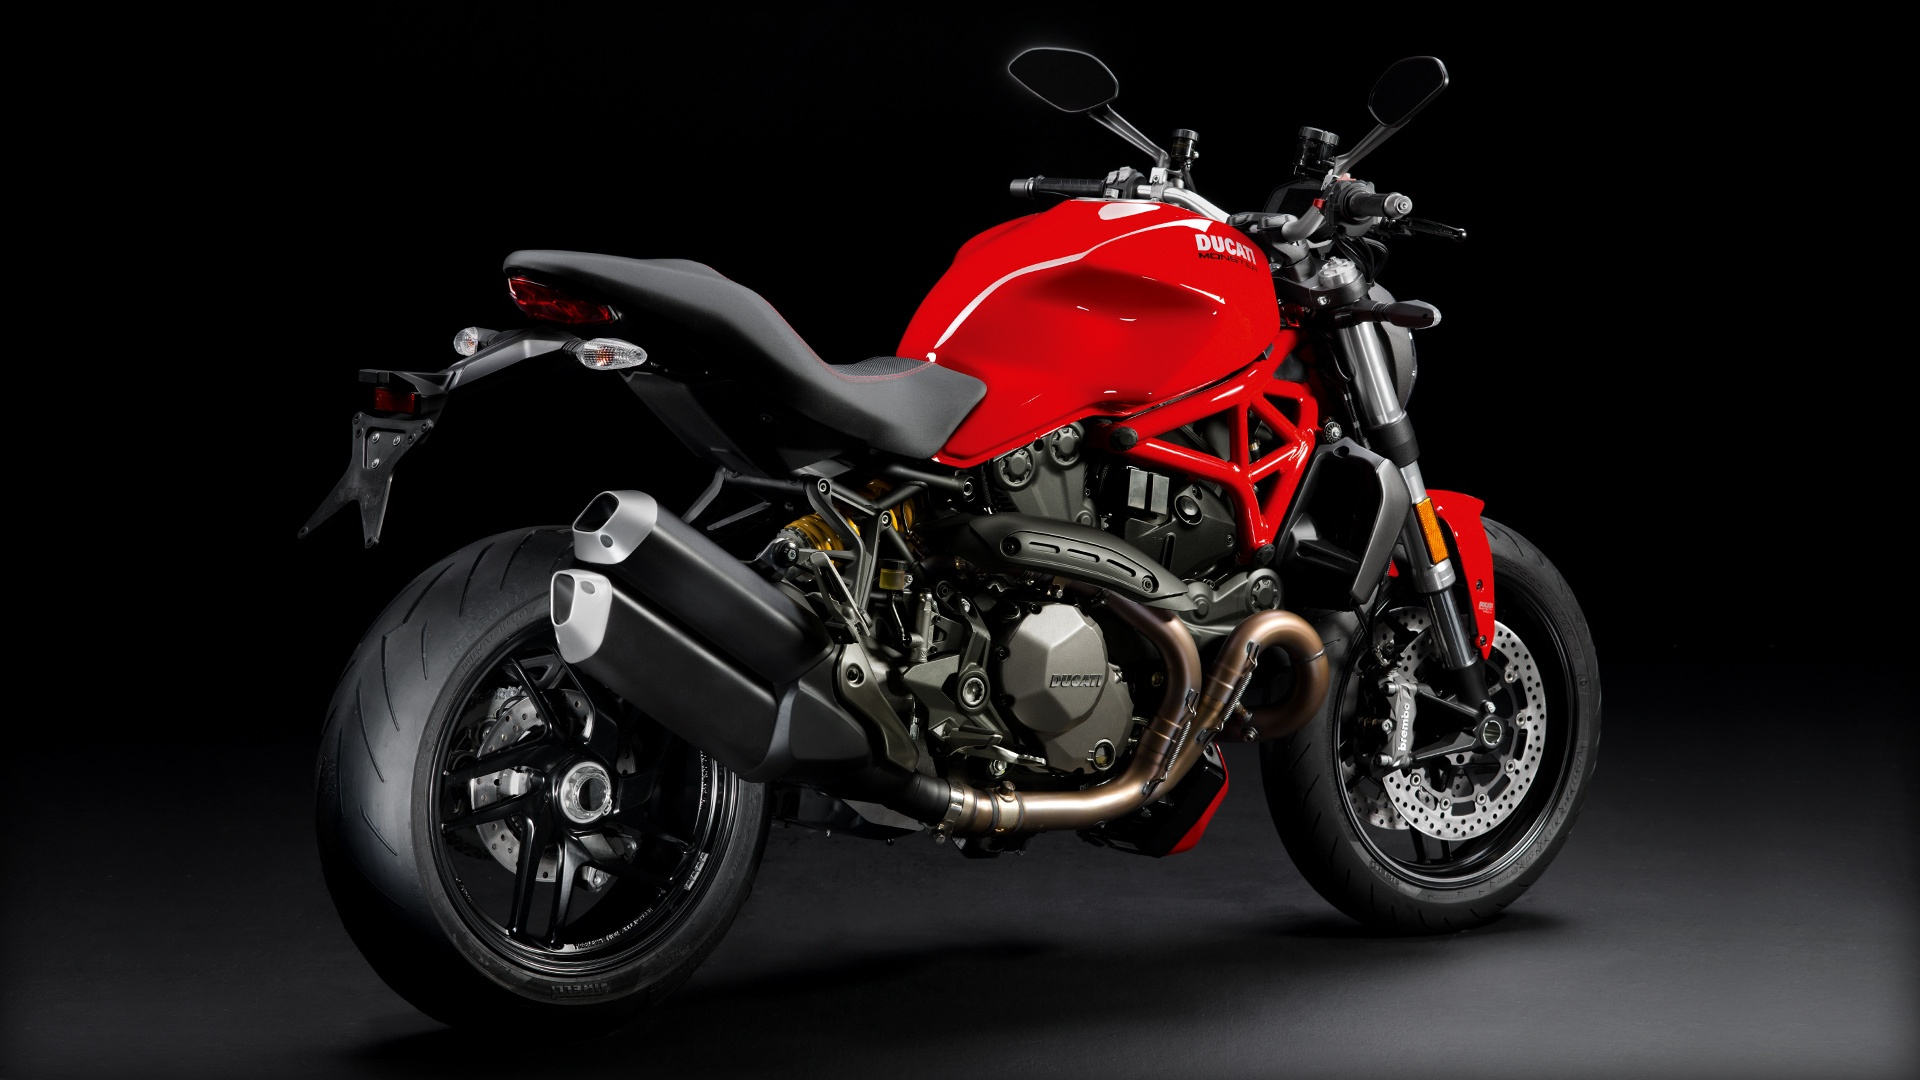 New 2017 Ducati Monster 1200 Motorcycles in Sacramento, CA